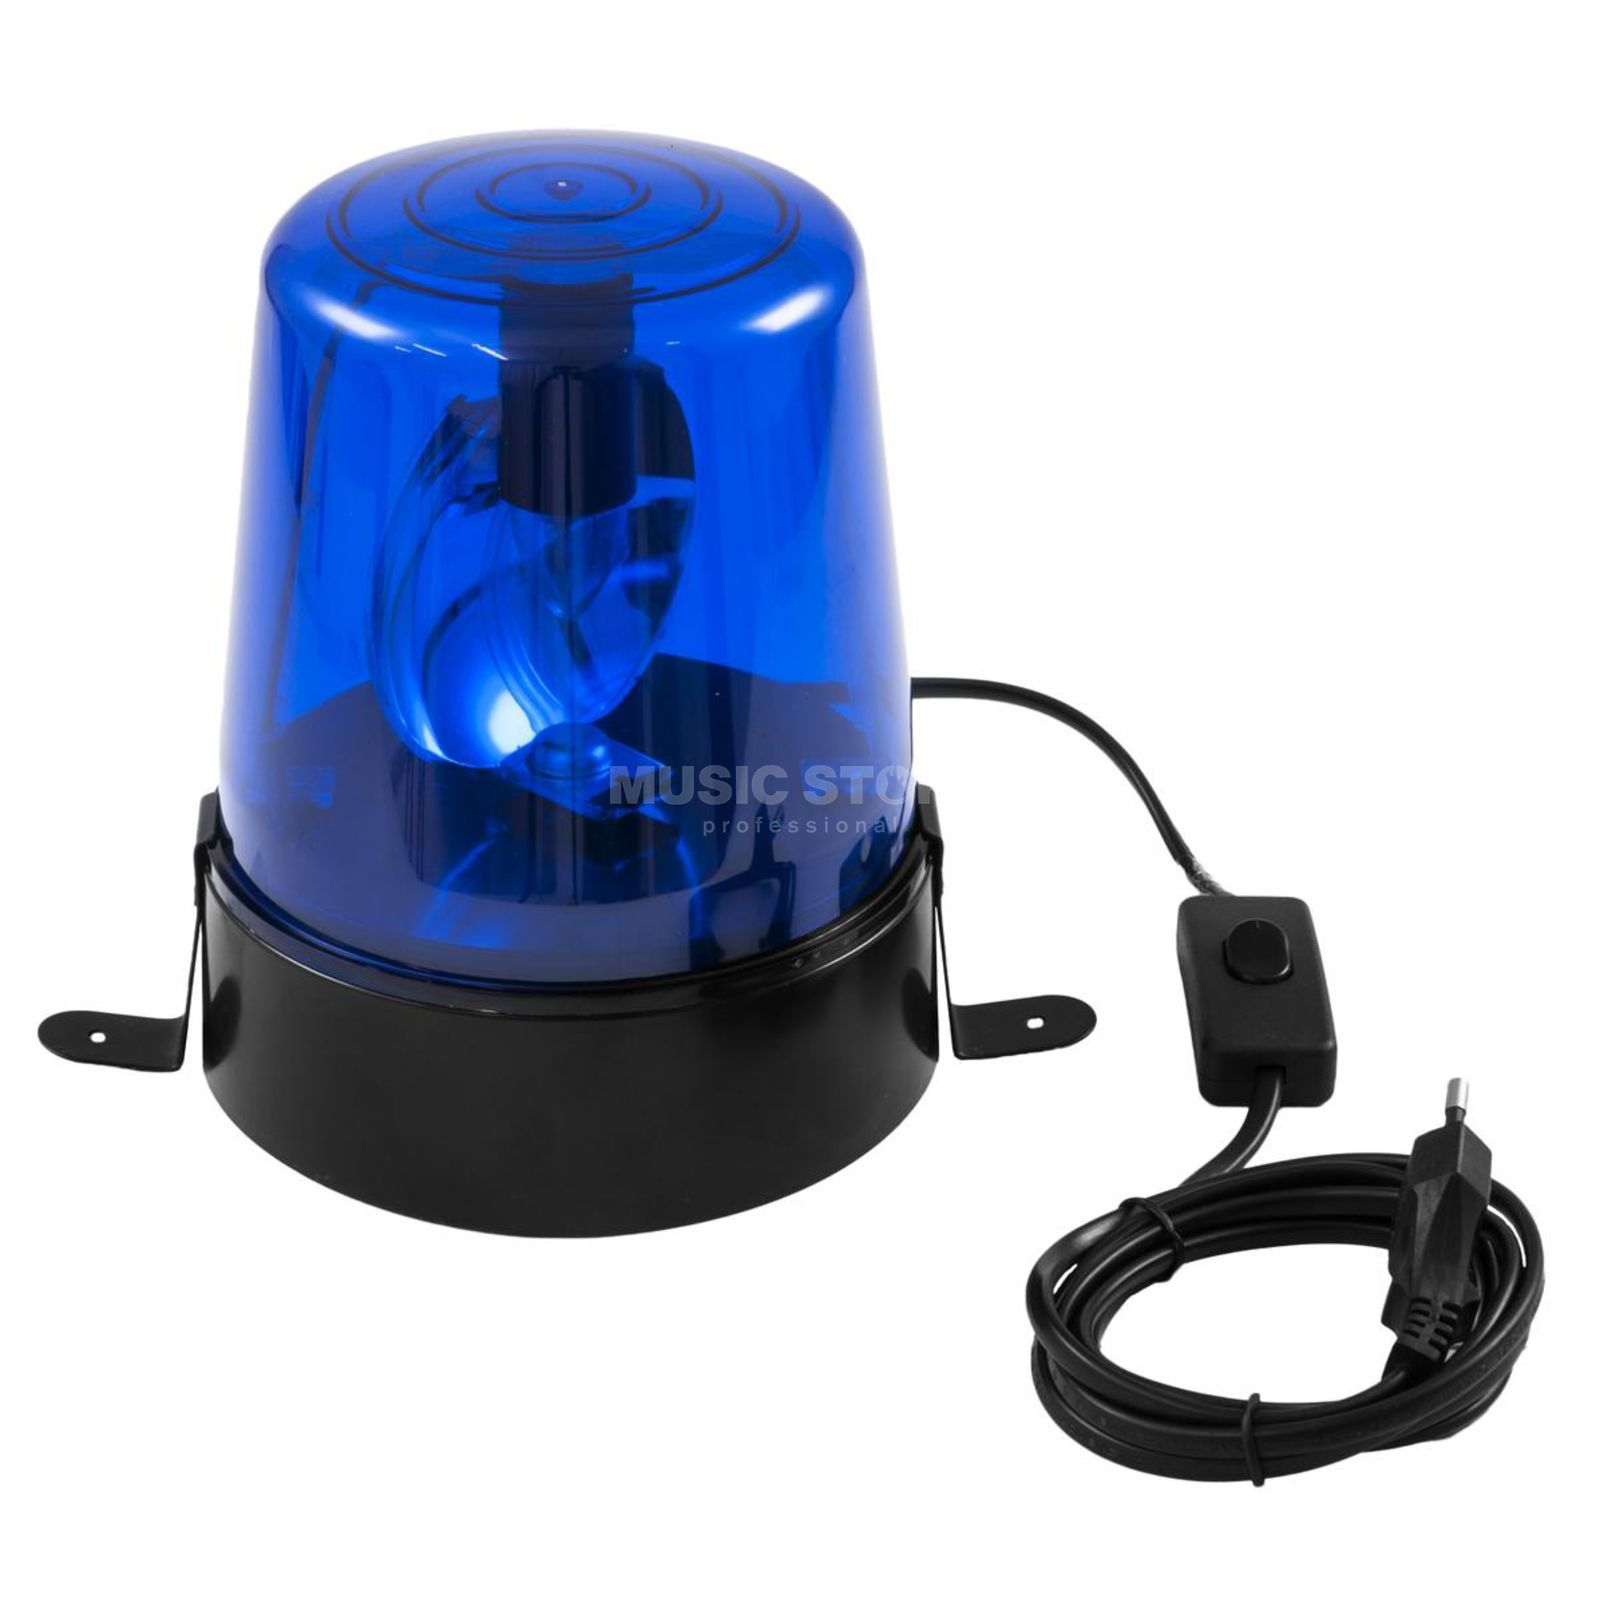 Eurolite Police Light 15 W BLUE inkl. Kabel & Stecker Produktbild